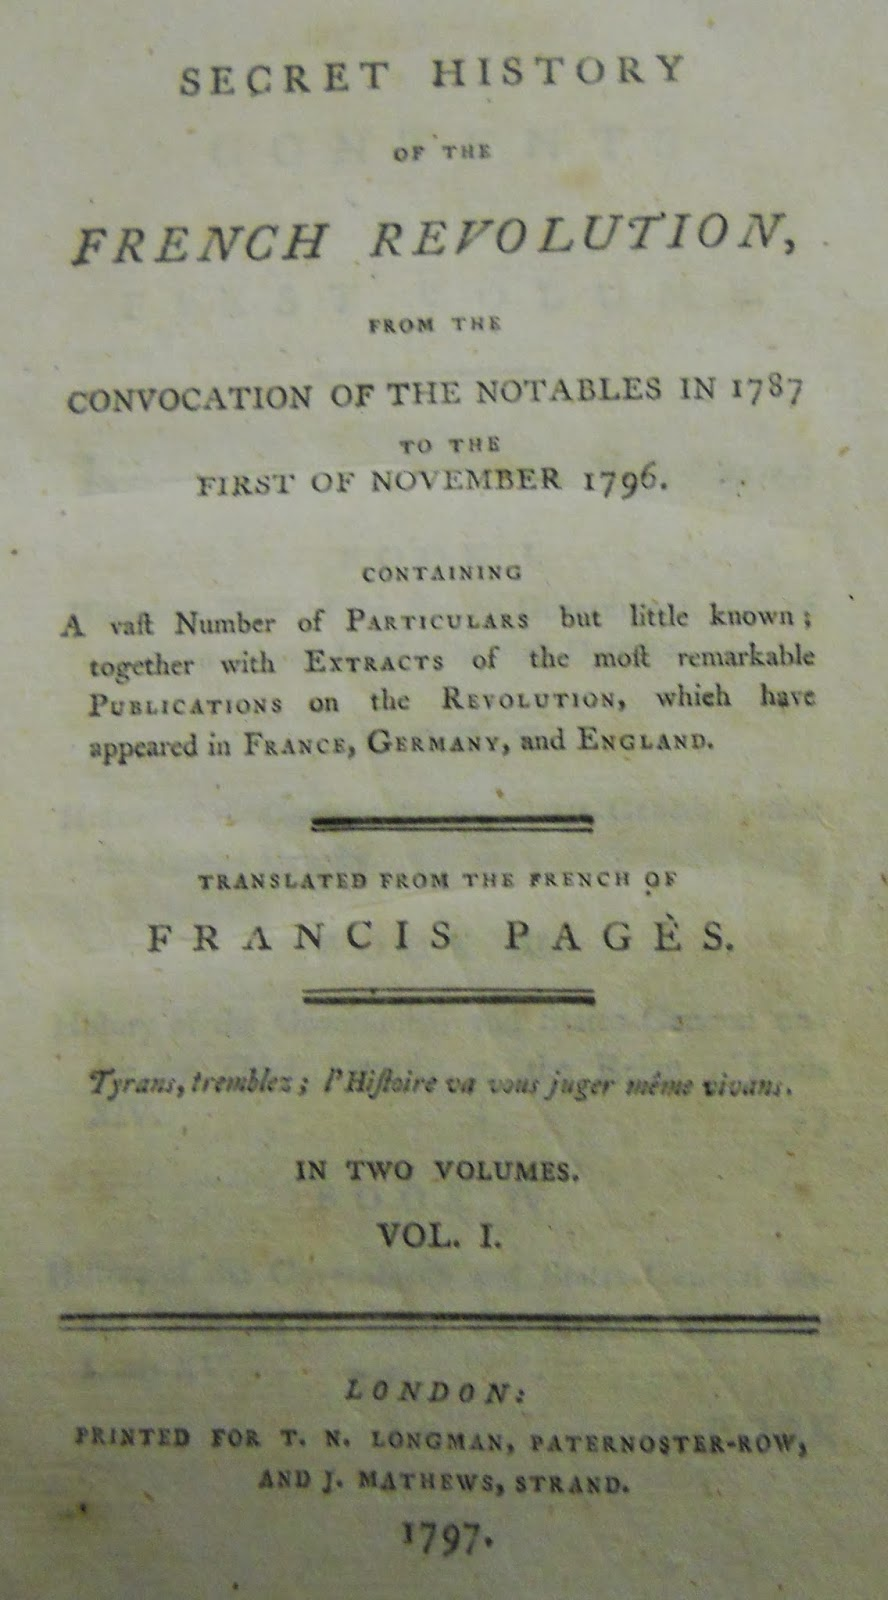 While Brandeis Houses An Extensive Collection Of French Language Pamphlets And Books On The Revolution Its English Texts Published In Both